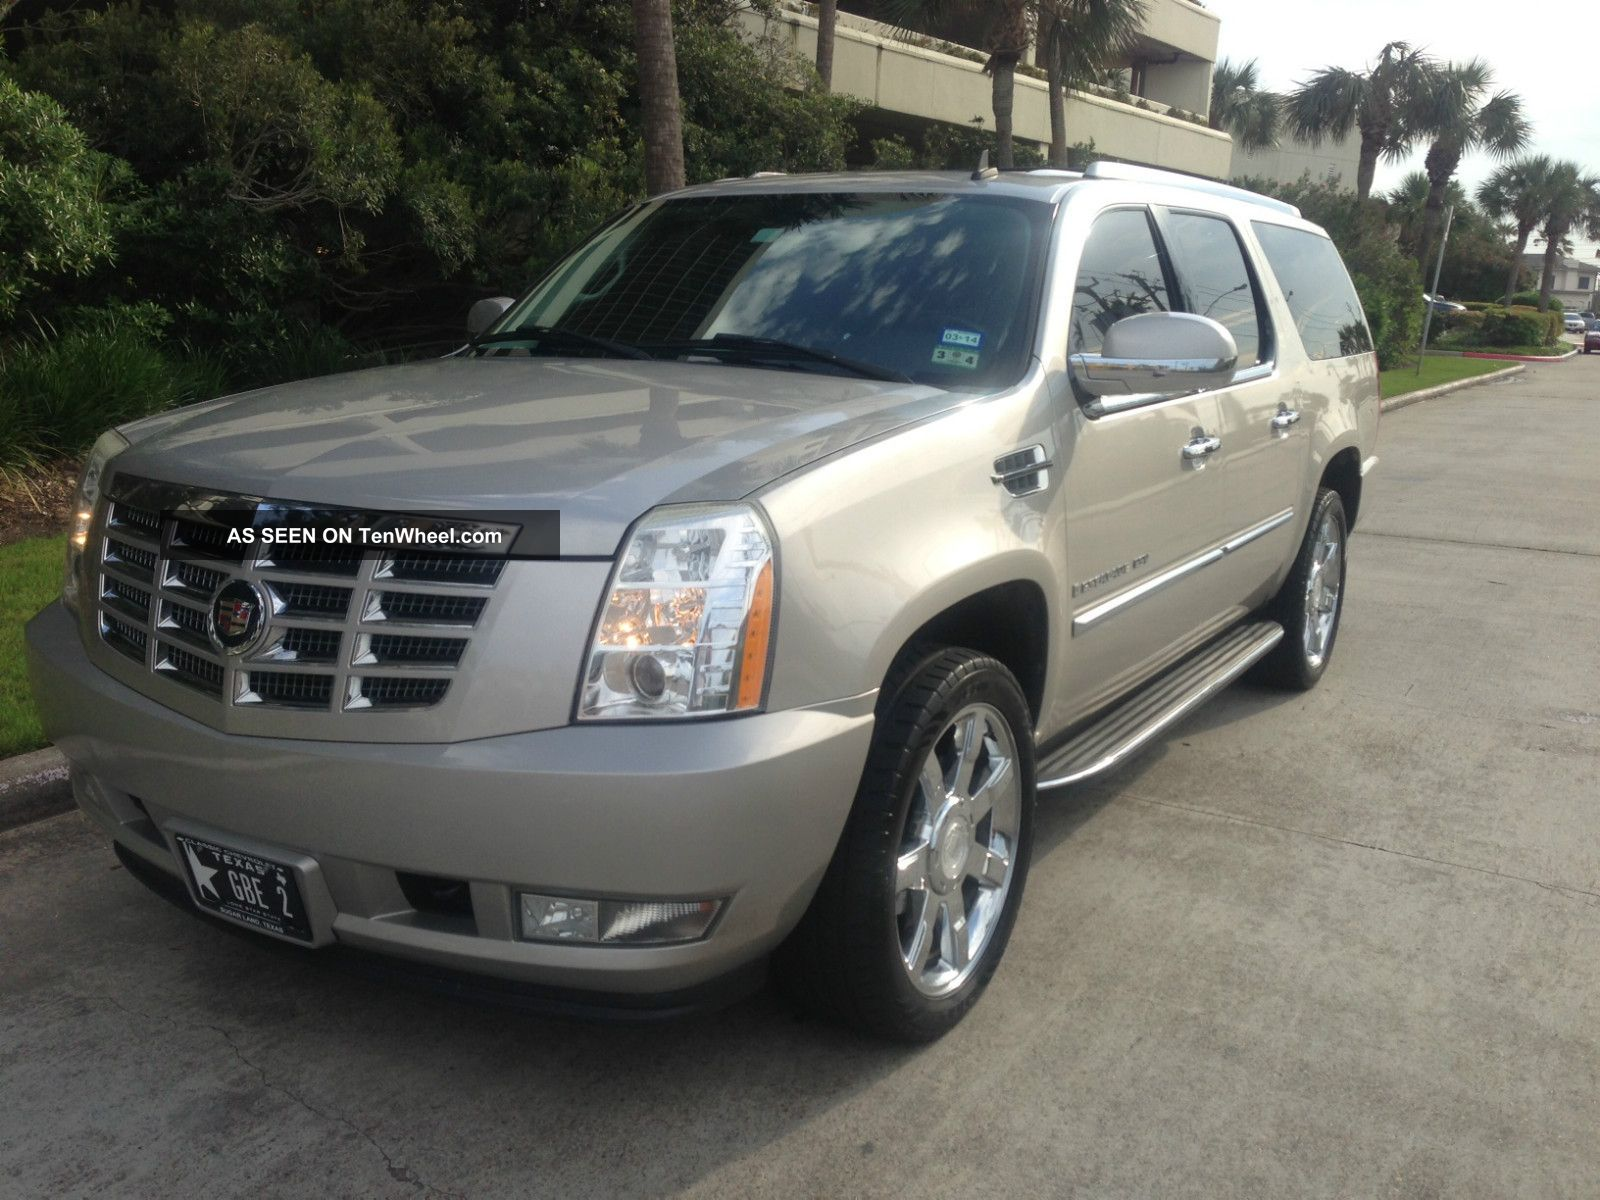 2007 cadillac escalade esv awd 6 2 v8 premium pkg 22in chrome wheels. Cars Review. Best American Auto & Cars Review